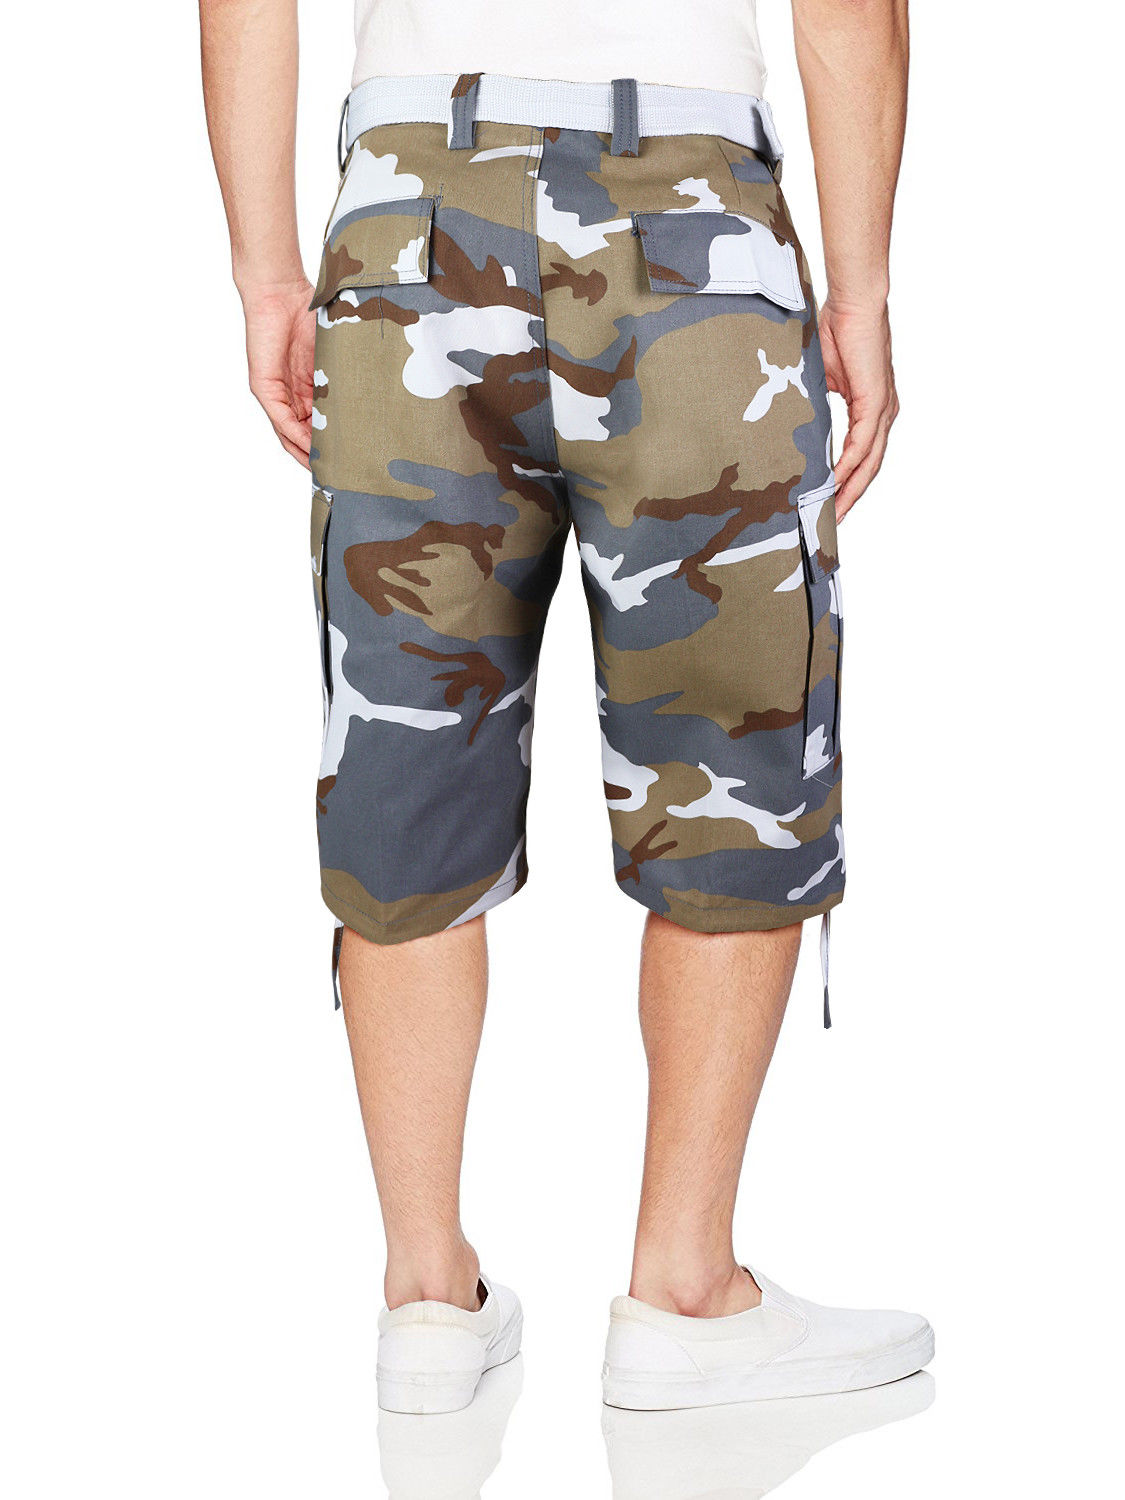 Men-039-s-Tactical-Military-Army-Camo-Camouflage-Slim-Fit-Cargo-Shorts-With-Belt thumbnail 11